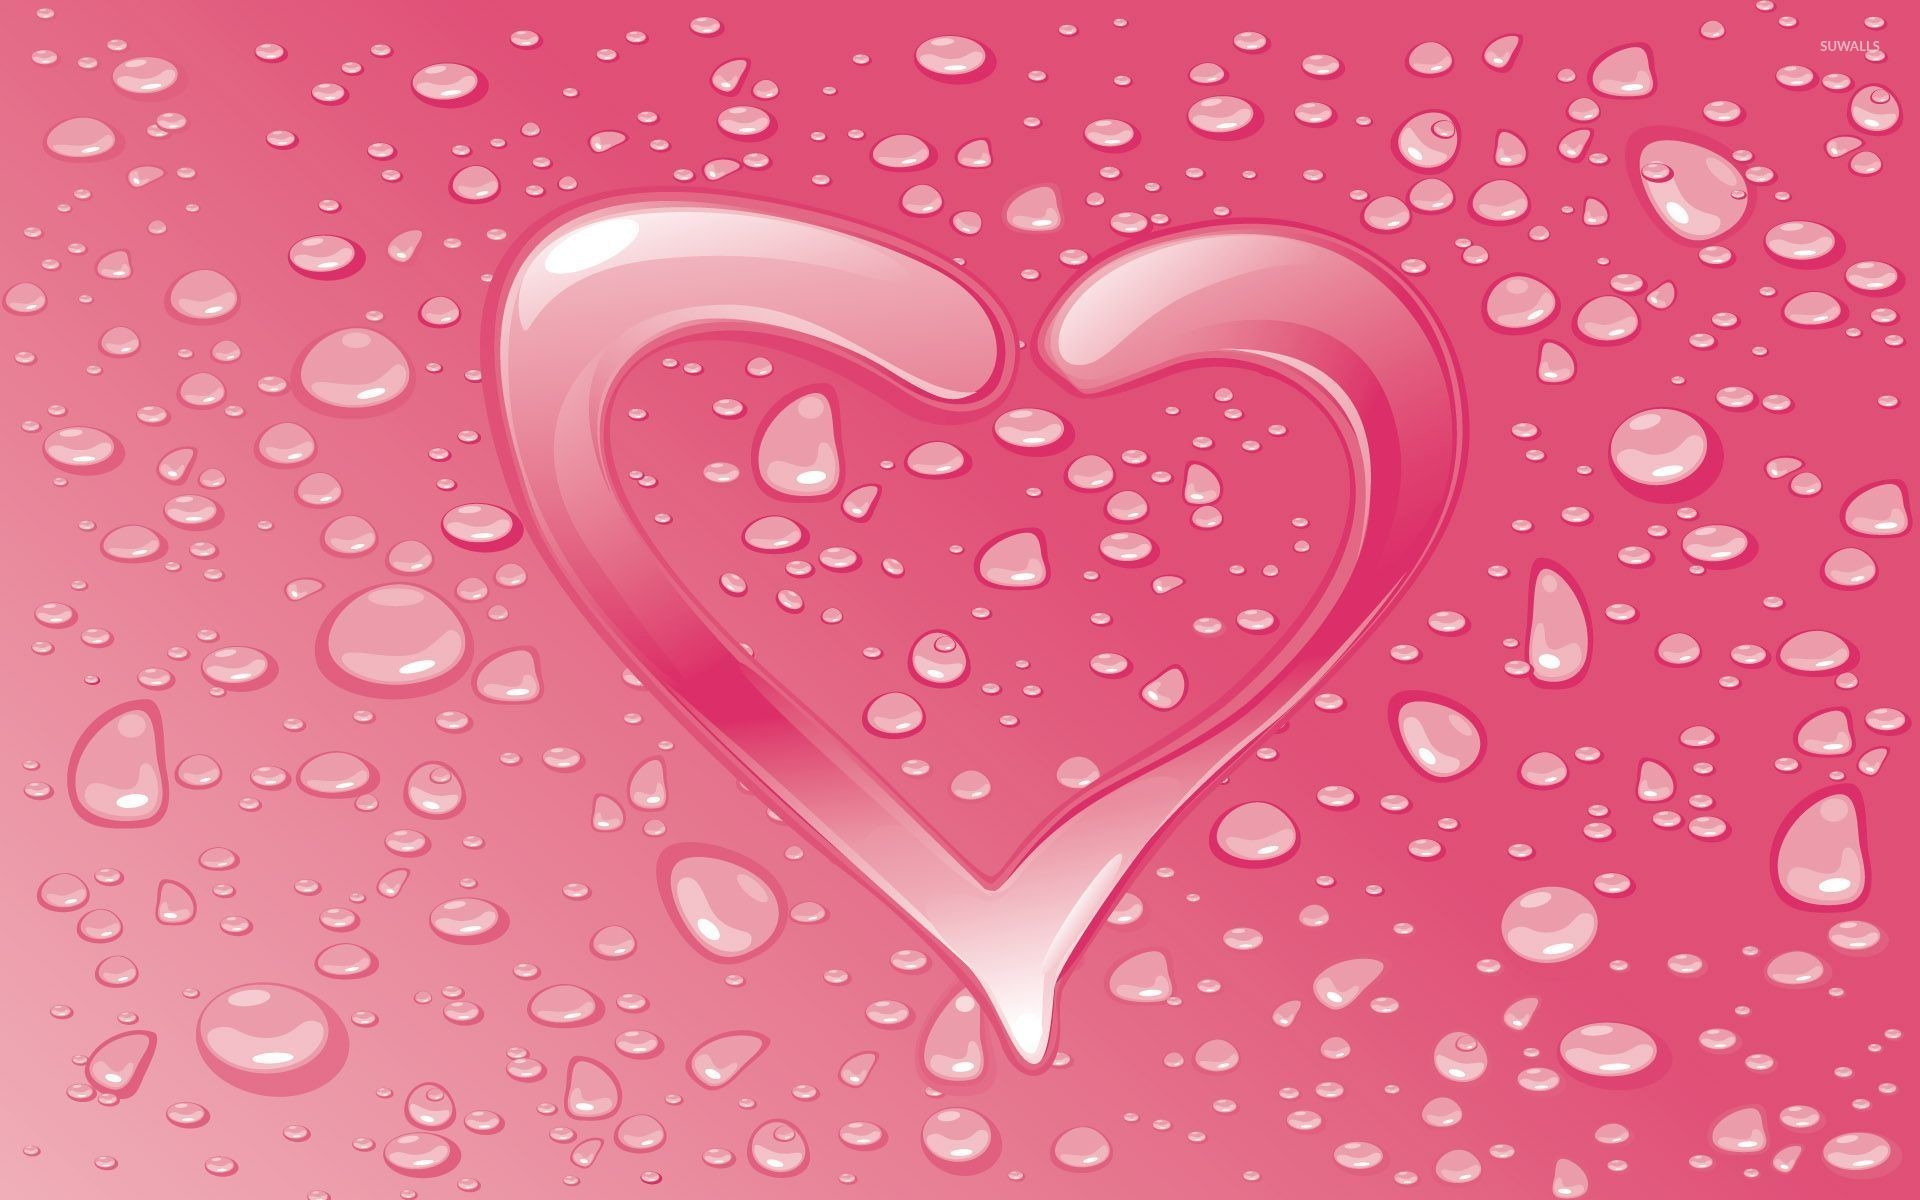 1920x1200 Water drops on the pink heart wallpaper